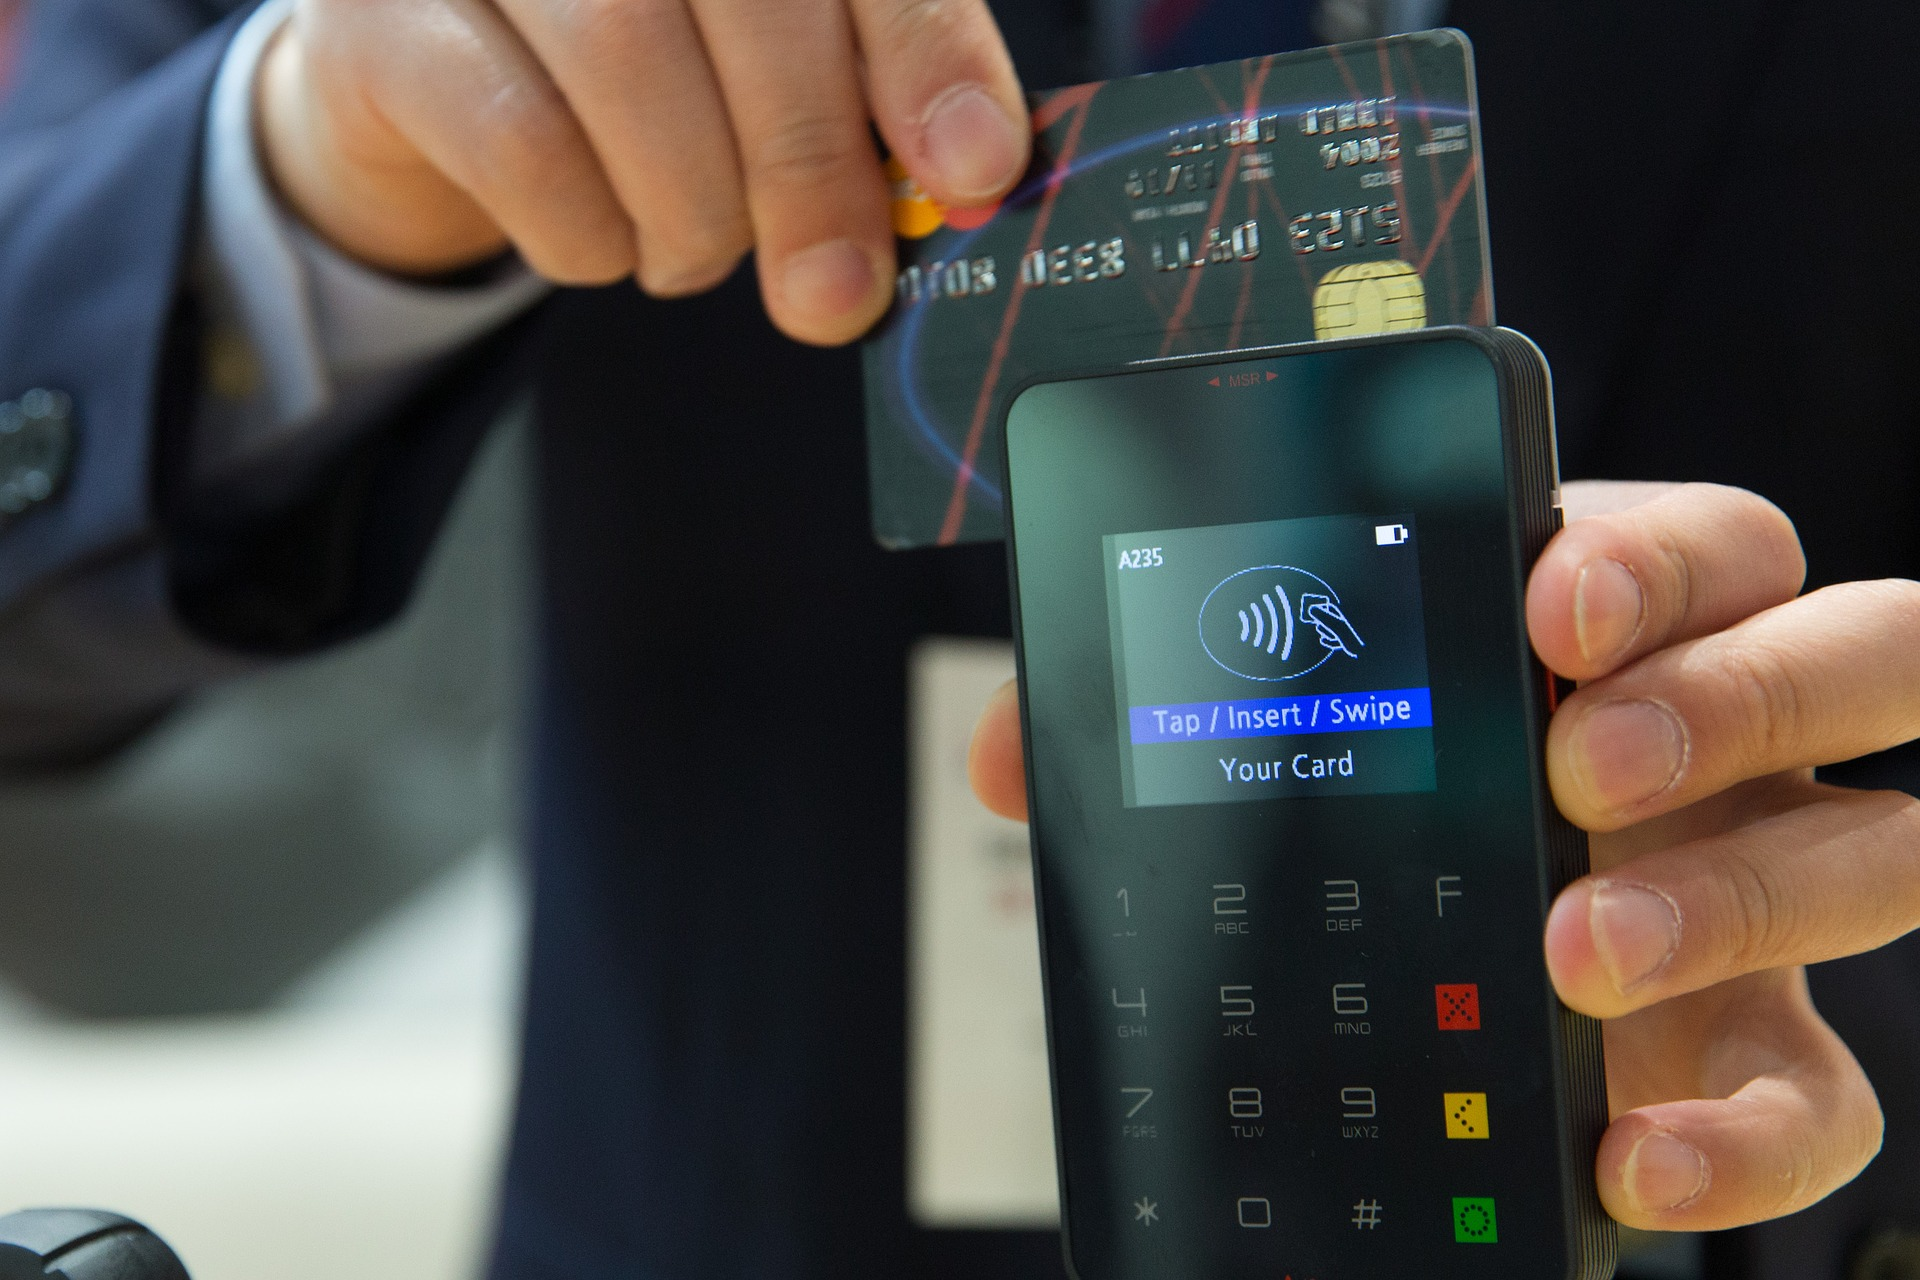 A person swiping a credit card on an eftpos machine